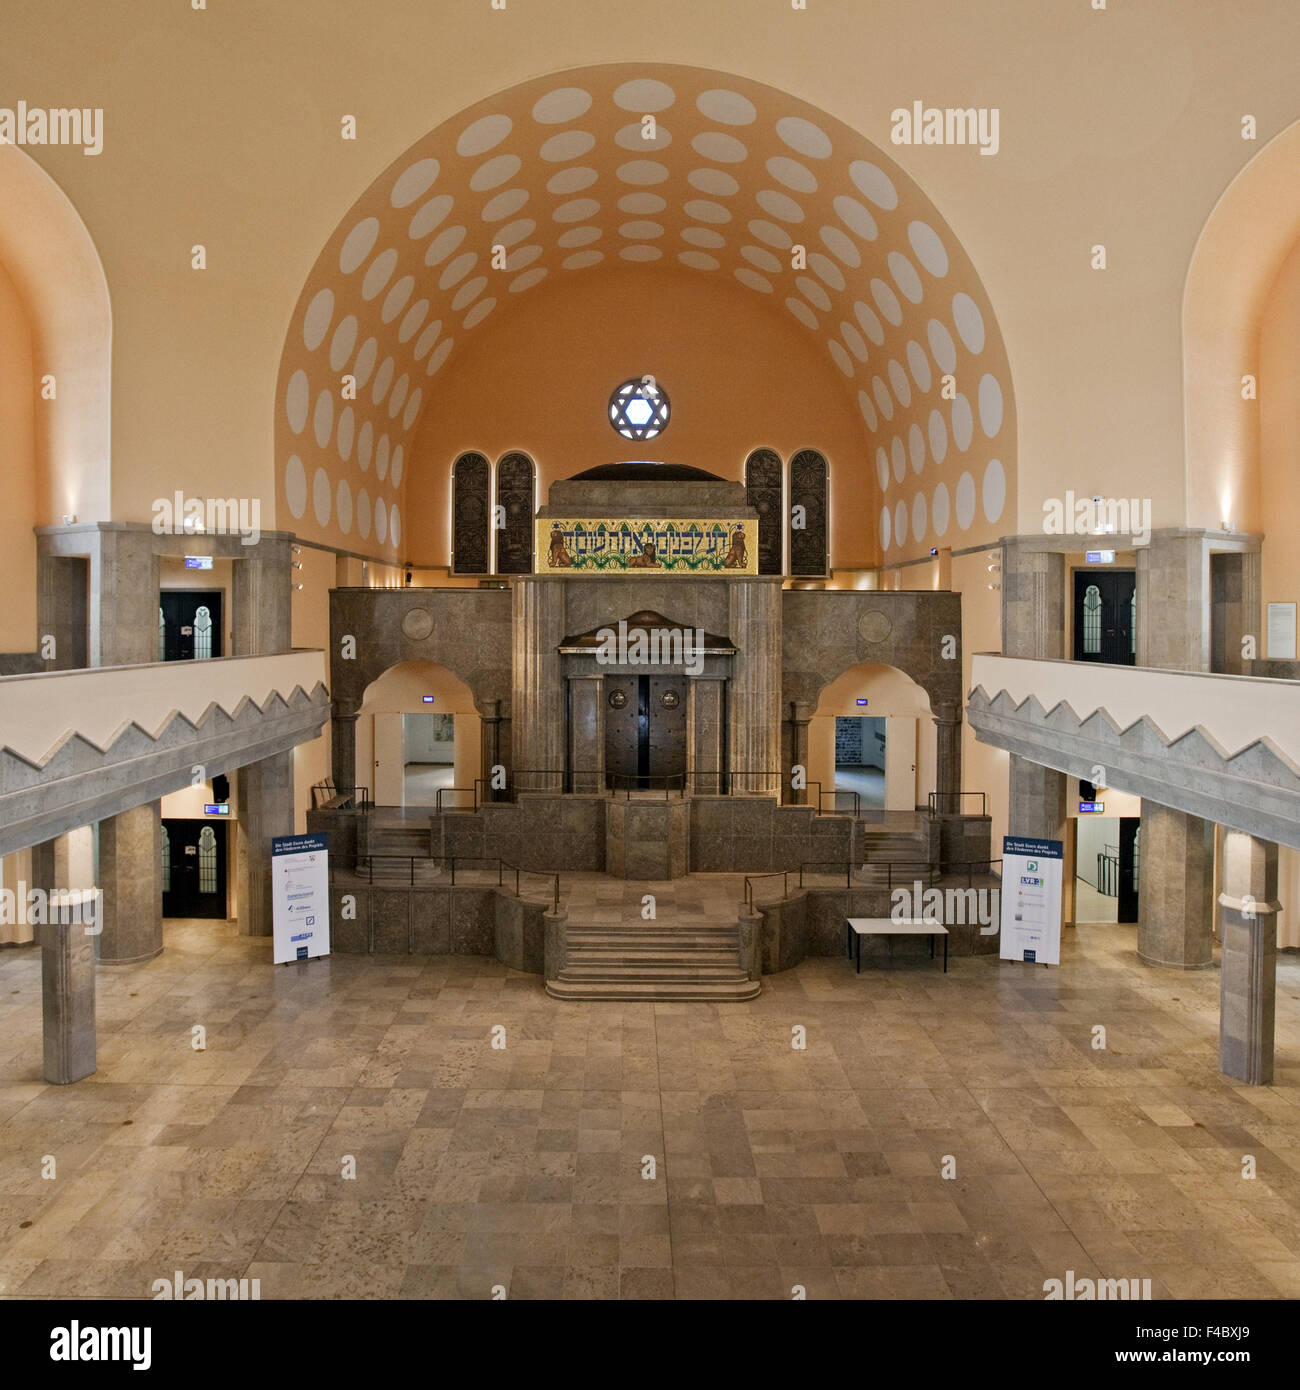 Old Synagogue, Essen, Germany - Stock Image